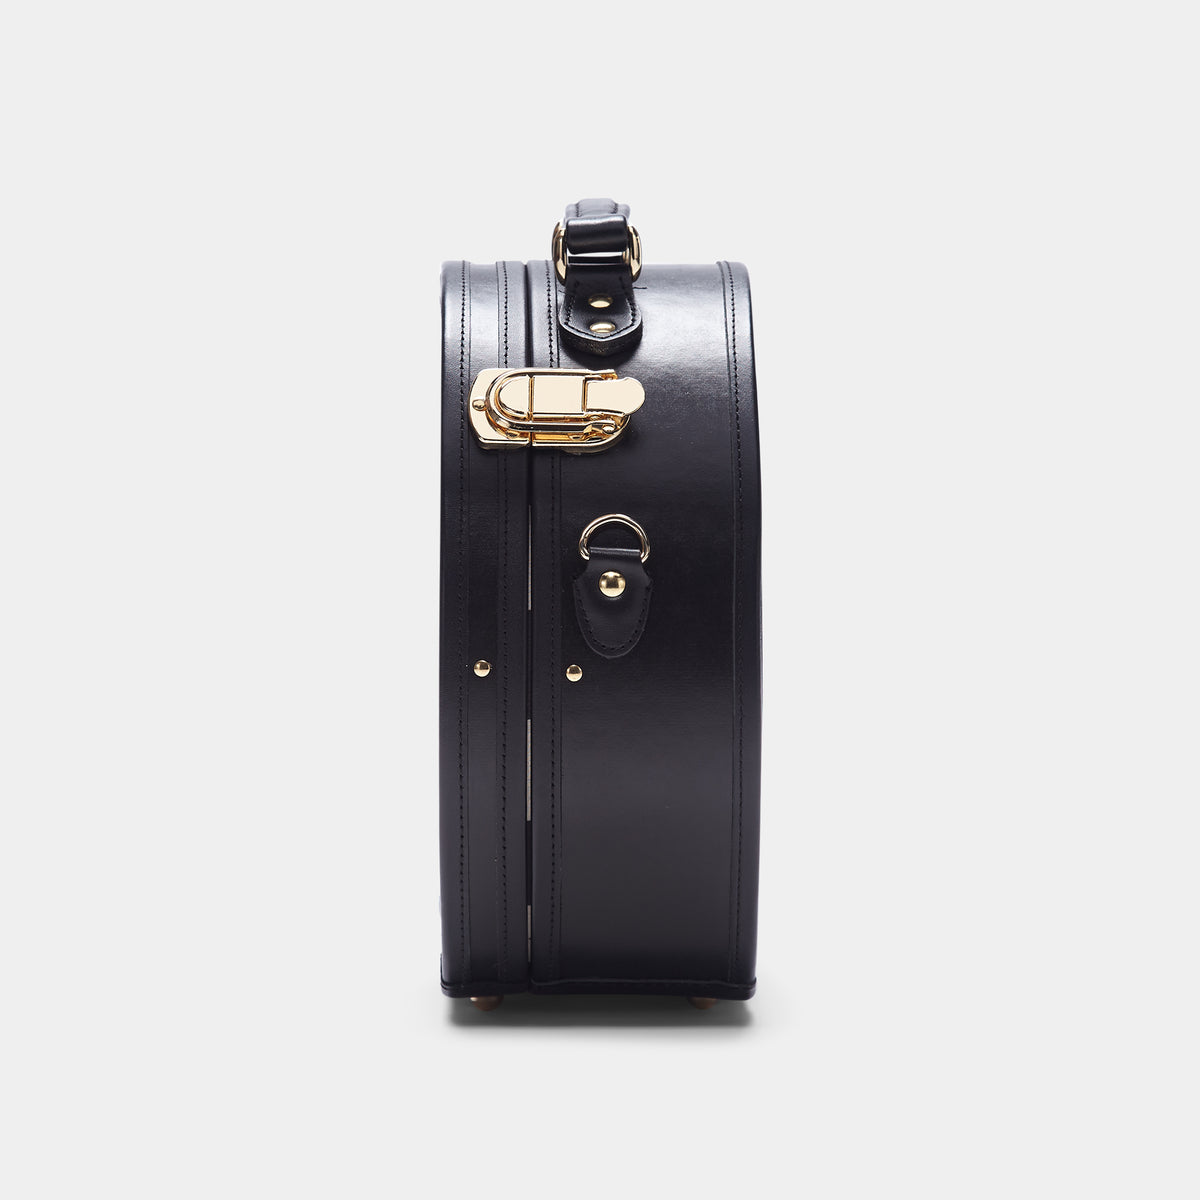 The alice + olivia X SteamLine in Black - Hat Box Luggage - Exterior Side